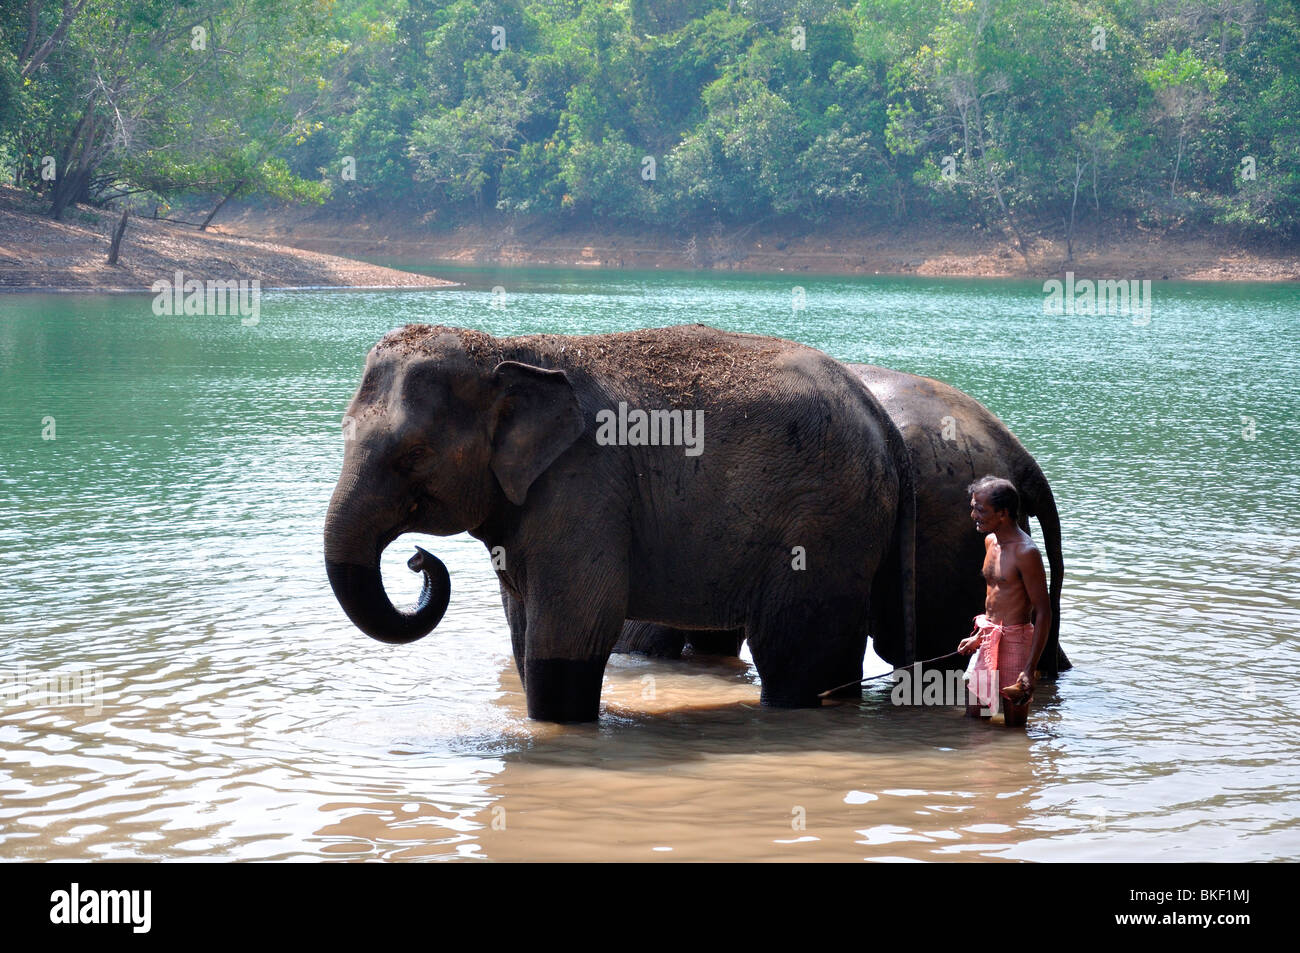 Elephants and Mahout - Stock Image